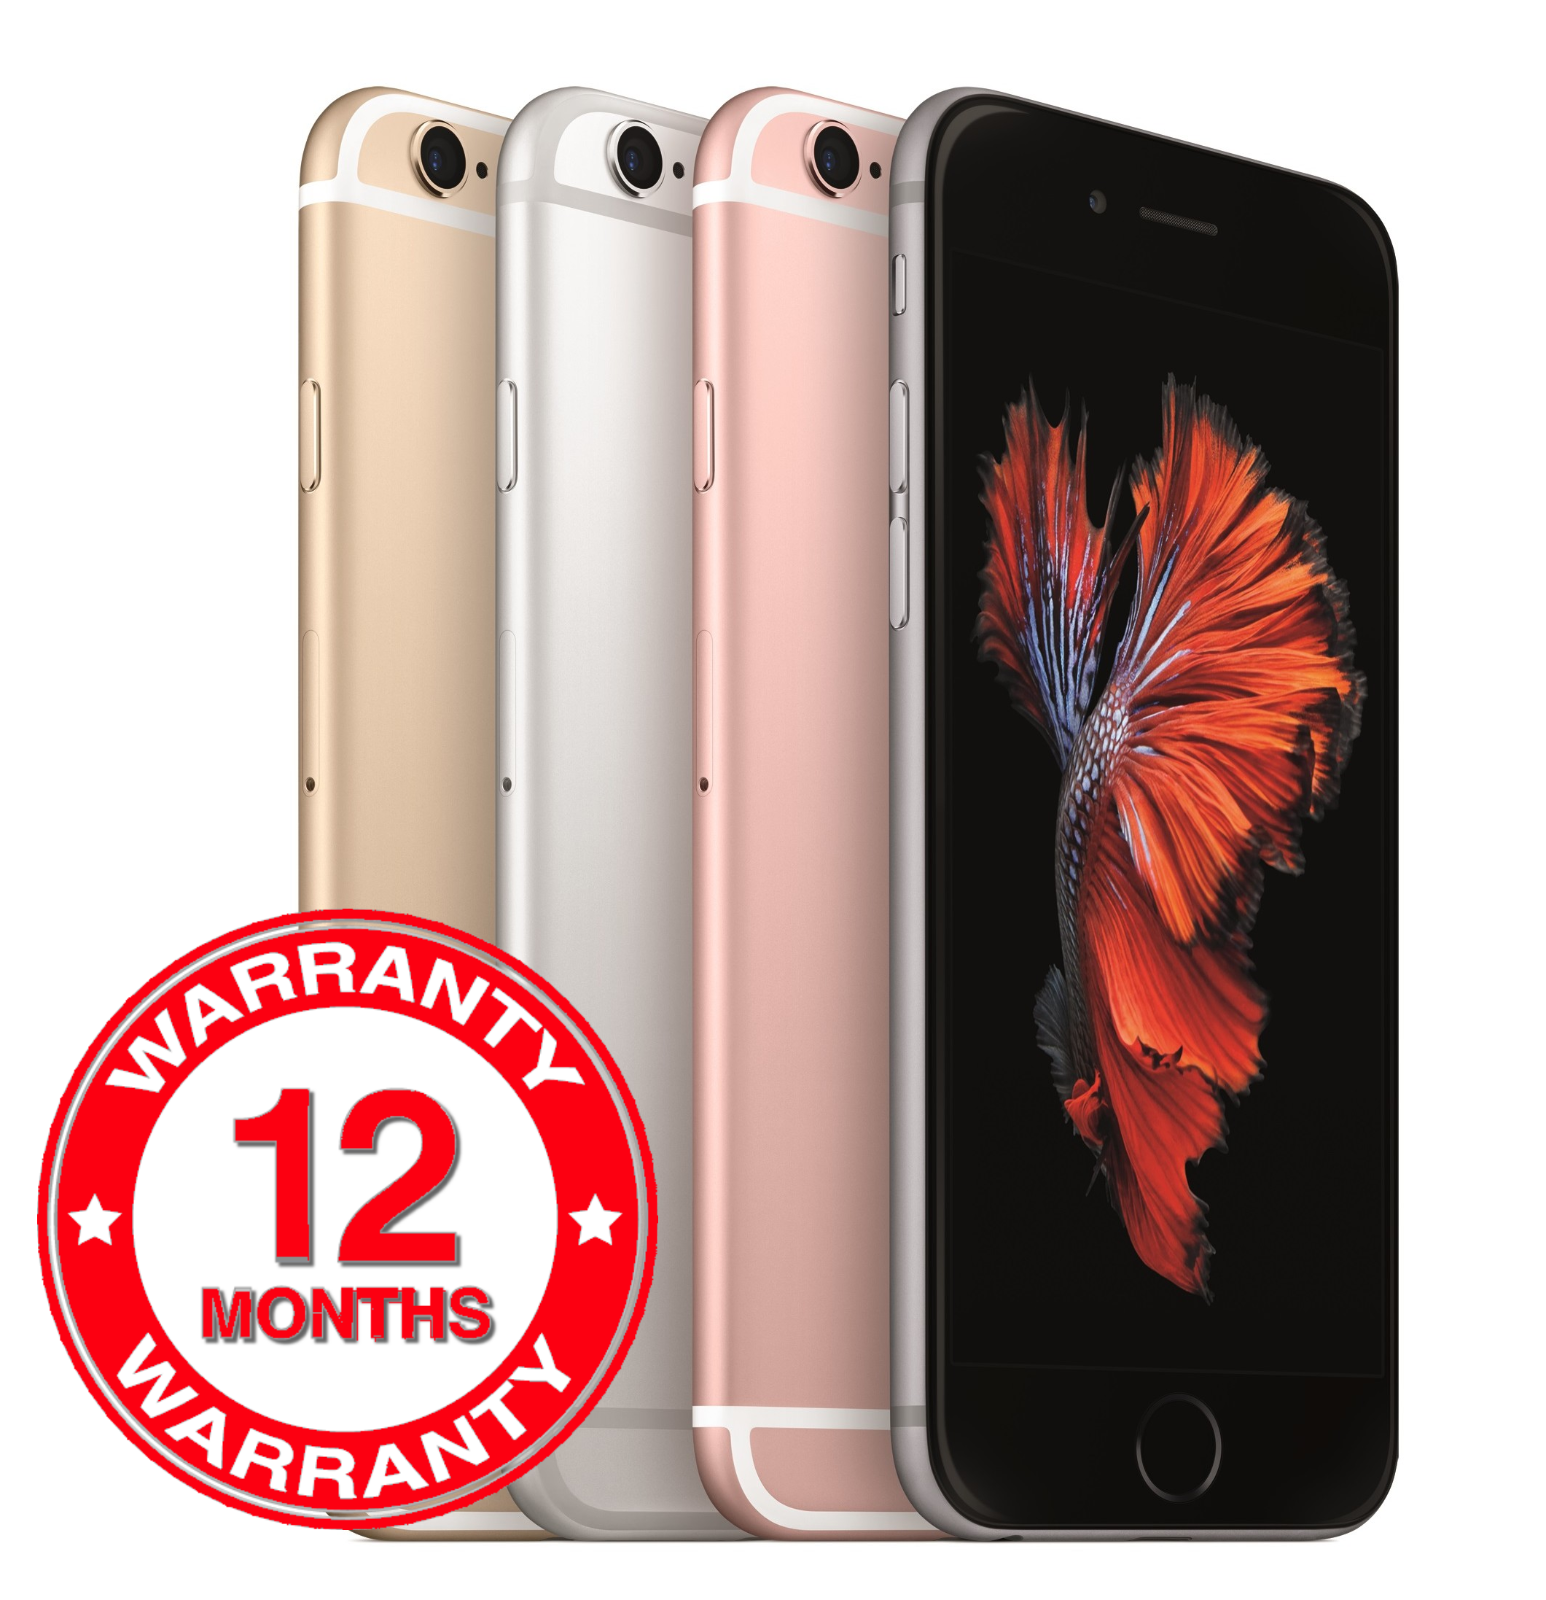 SELLER REFURBISHED APPLE IPHONE 6S - 16GB 64GB 128GB - UNLOCKED SIM FREE SMARTPHONE VARIOUS COLOURS